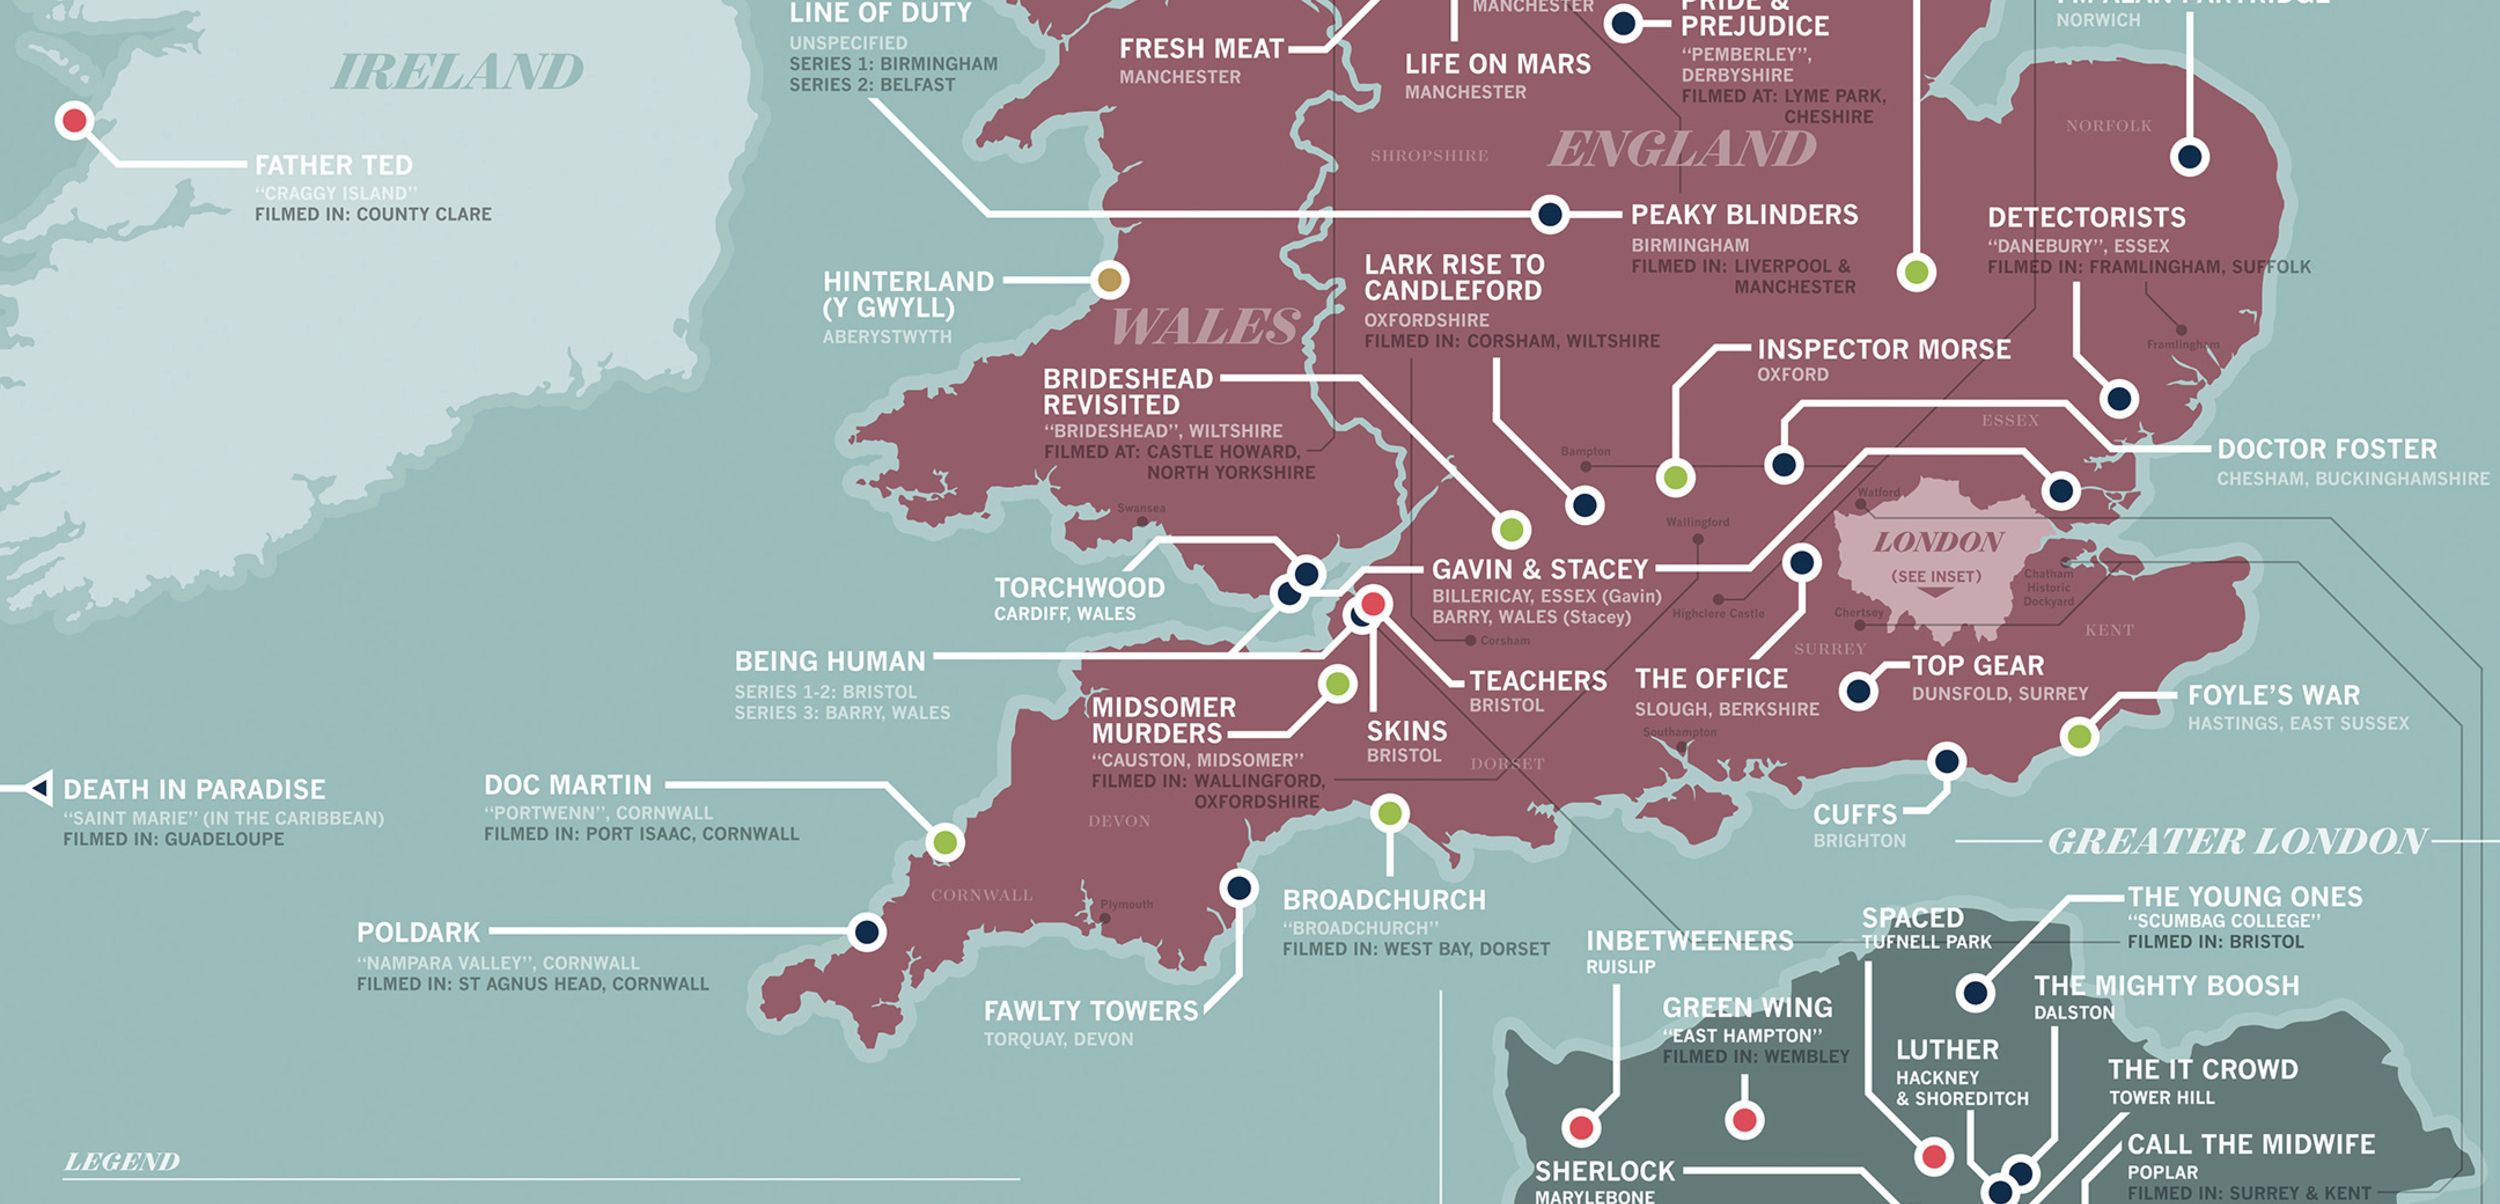 The Great British Television Film Location Map By Graphic Designer